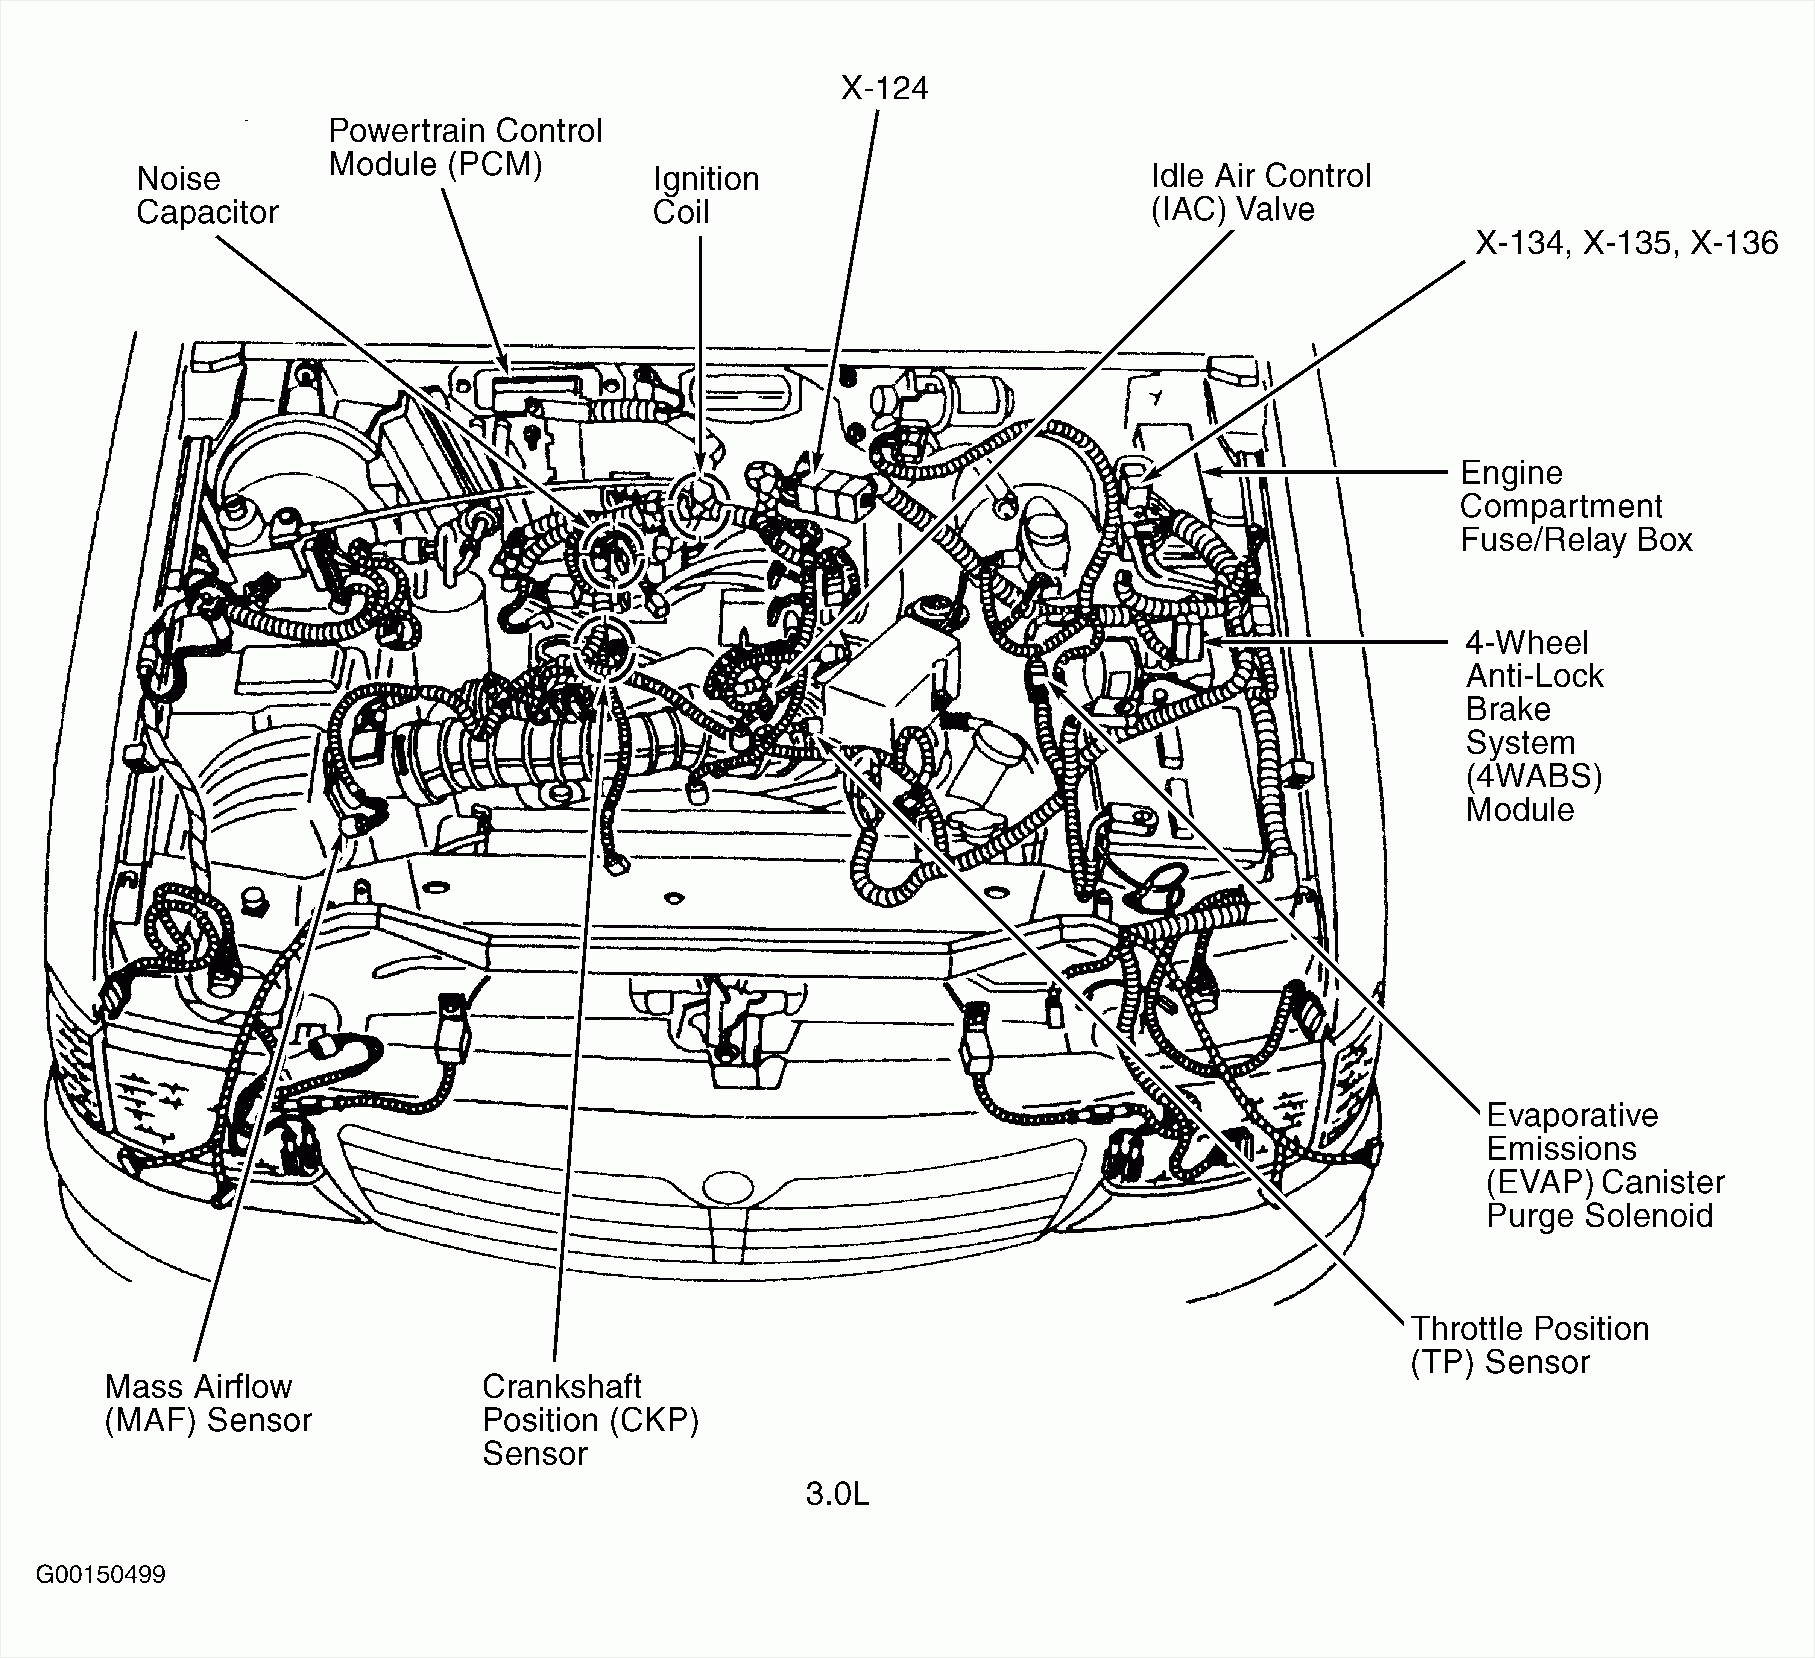 Engine Oil System Diagram For 2003 Cadillac Cts Marine